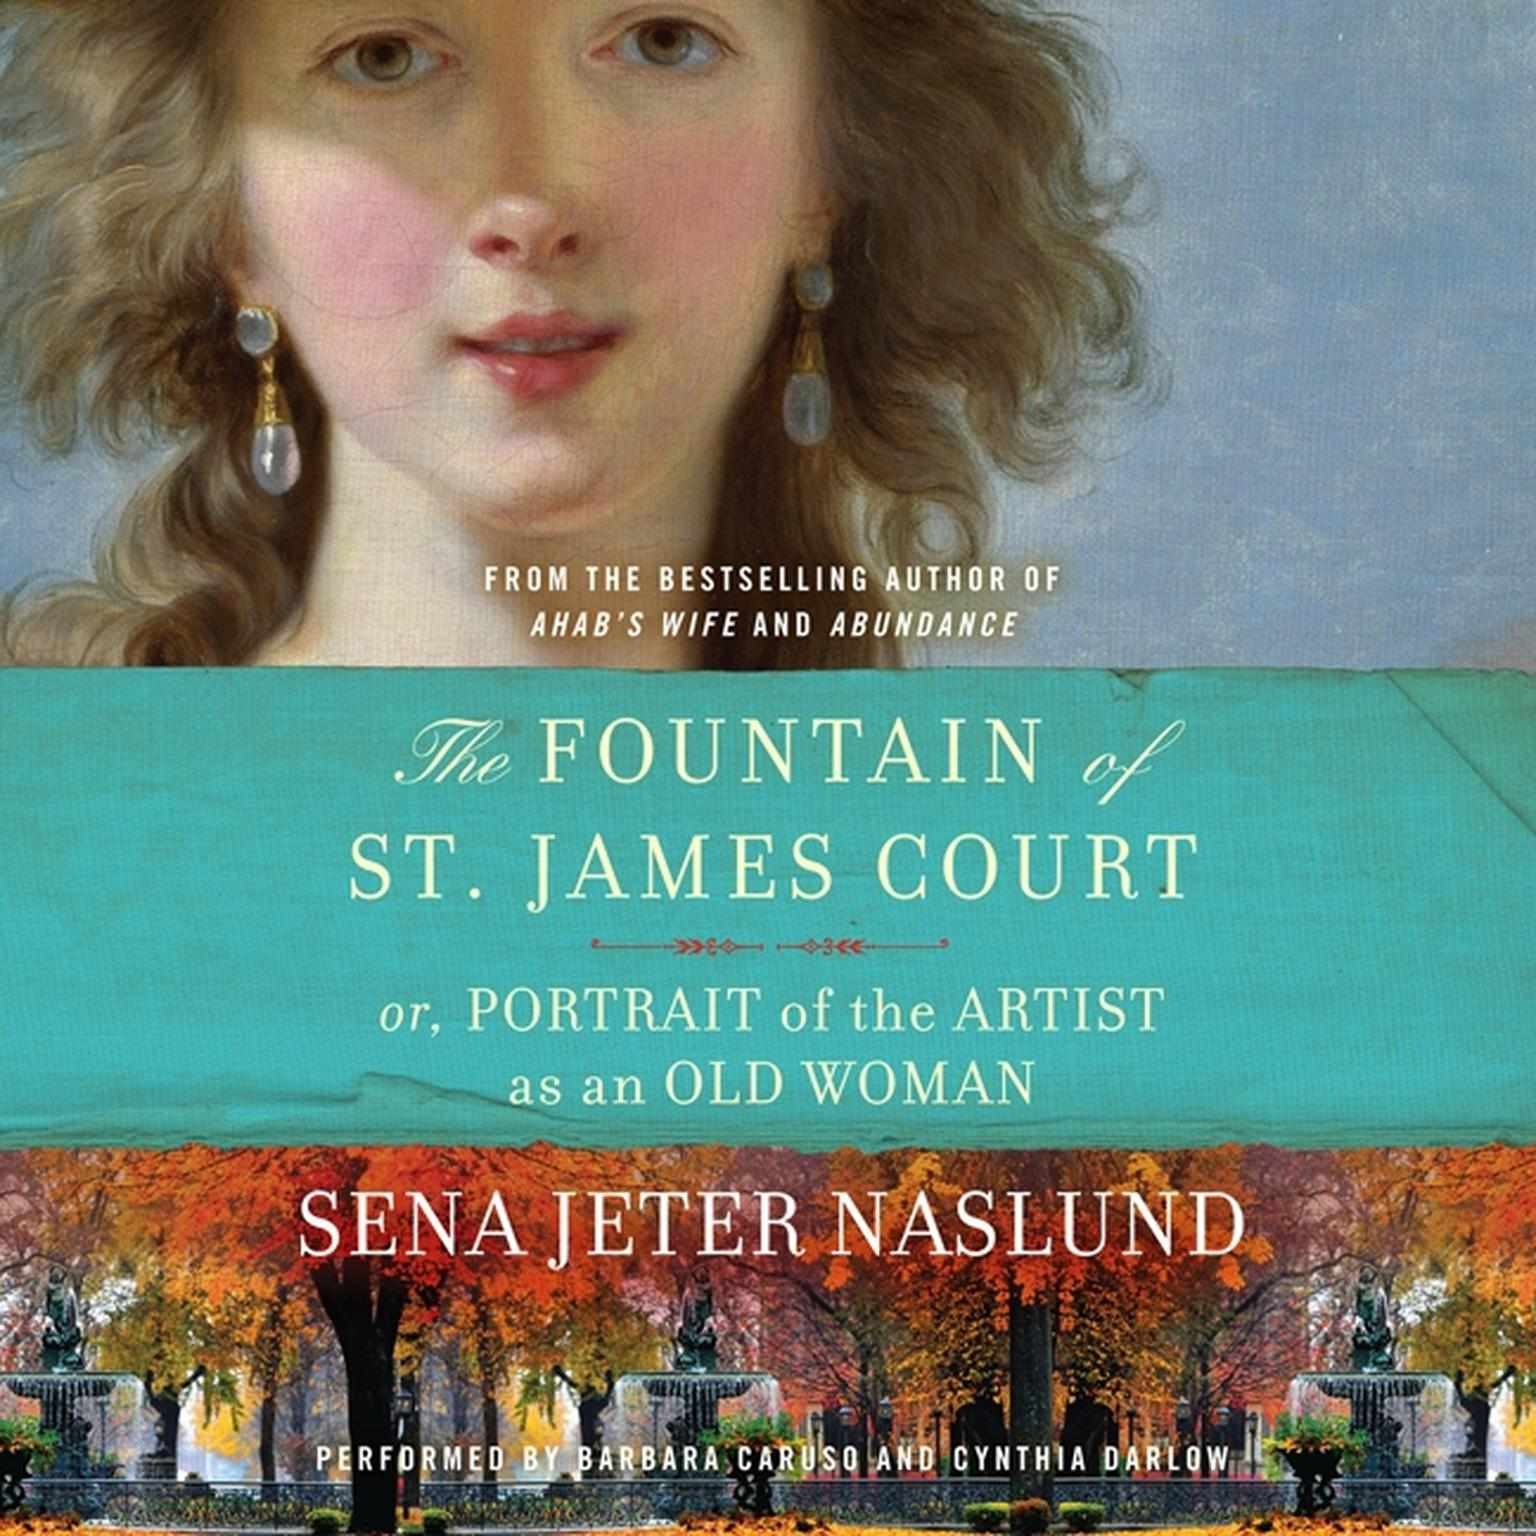 Printable The Fountain of St. James Court; or, Portrait of the Artist as an Old Woman Unab: A Novel Audiobook Cover Art